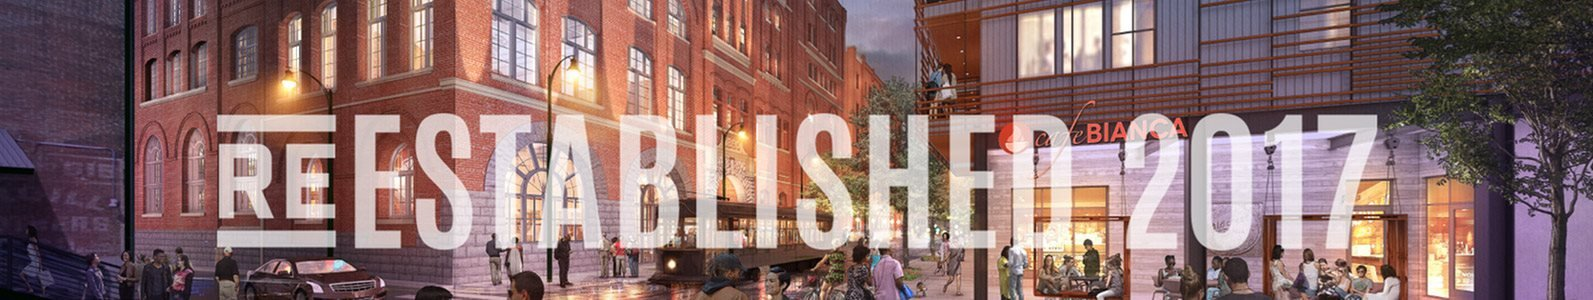 The Brewery's outdoor access and urban atmosphere commingle in two courtyards, creating a lively mix of the historic and contemporary at The Tennessee Brewery, Memphis, TN 38103